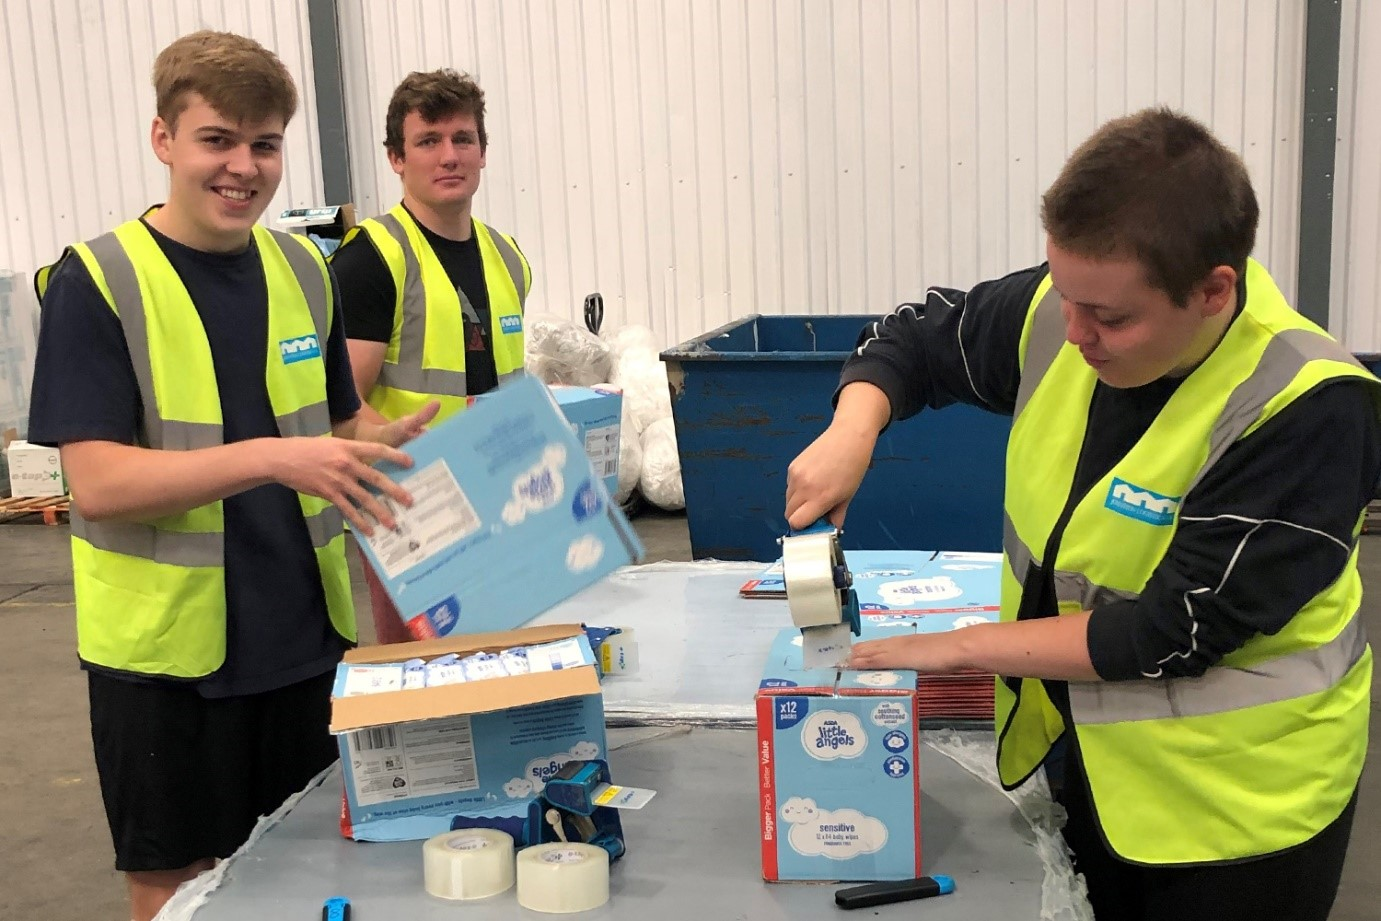 Johnston Logistics UK Help Hard-Working Students Earn Money and Gain Experience